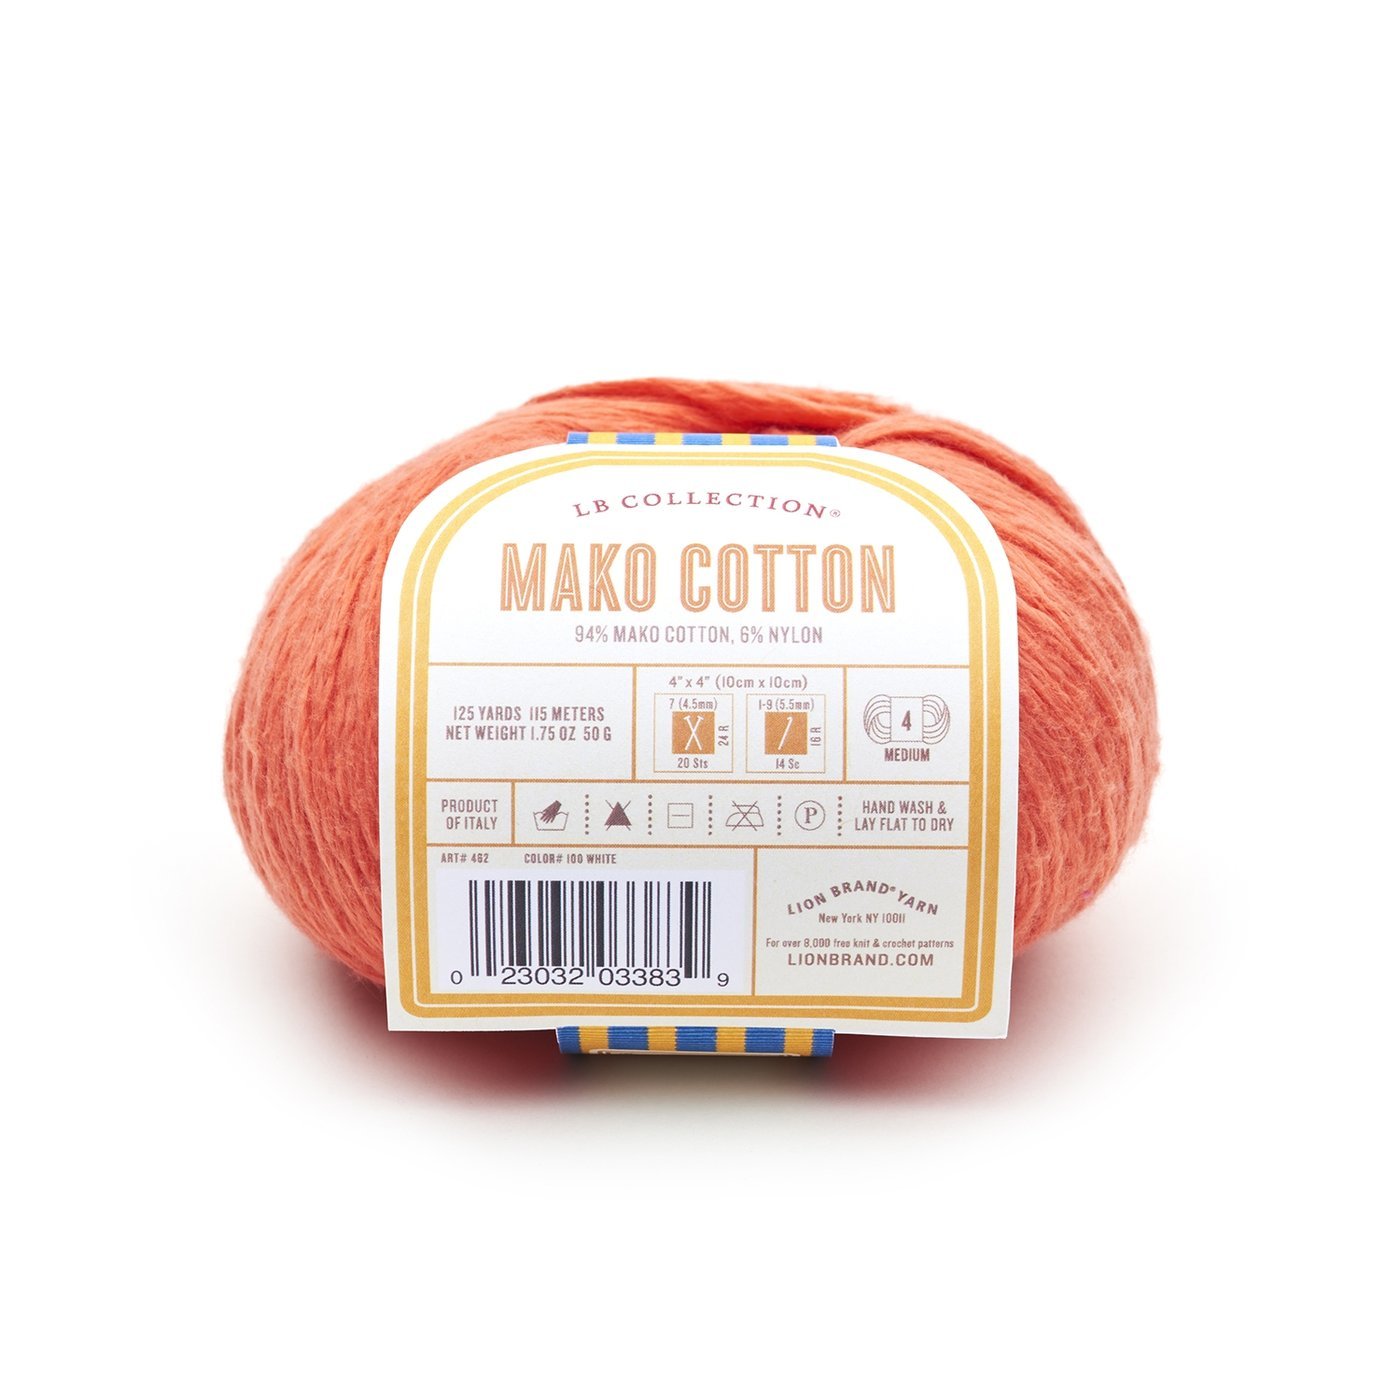 94% Mako Cotton, 6% Nylon lends a smoothness & strength